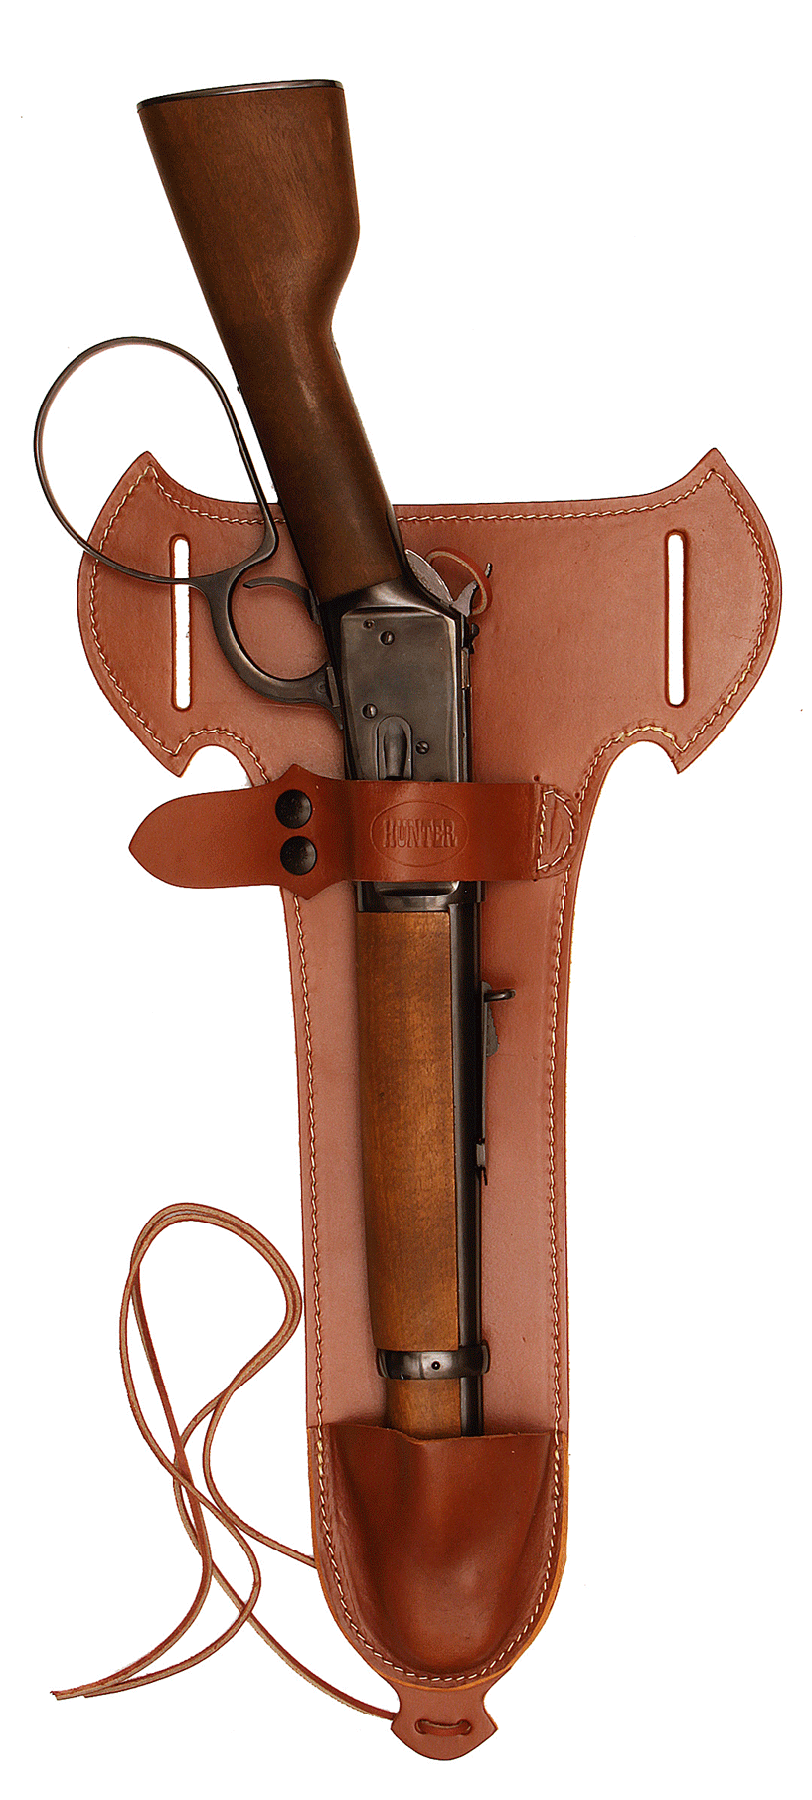 Hunter Company 1892C Belt Holster  Brown Leather